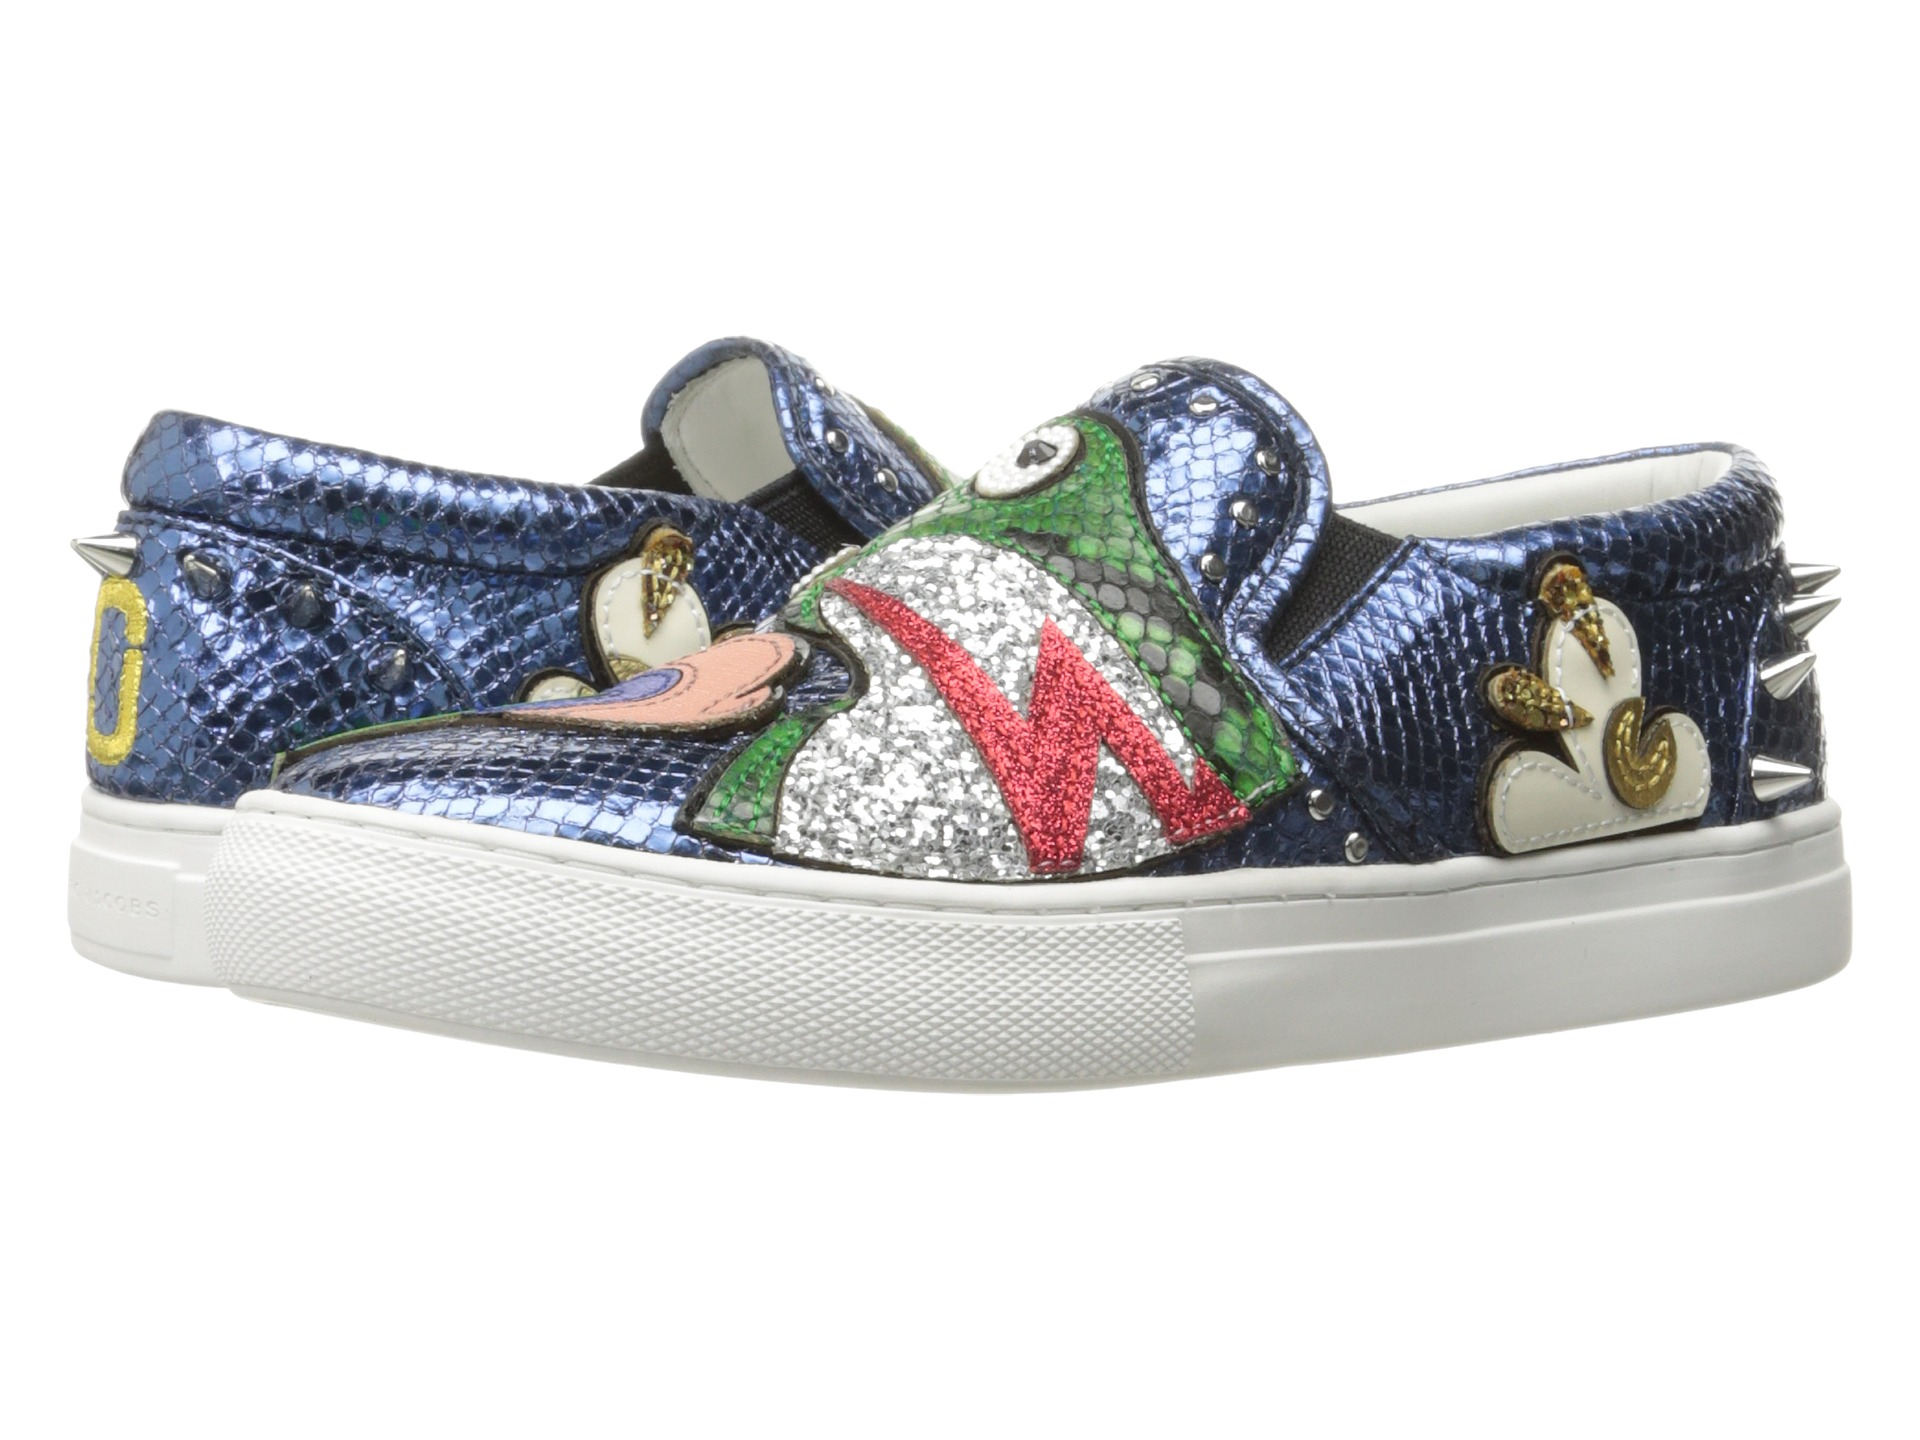 Roller skate shoes size 10 - View More Like This Marc Jacobs Mercer Frog Skate Sneaker